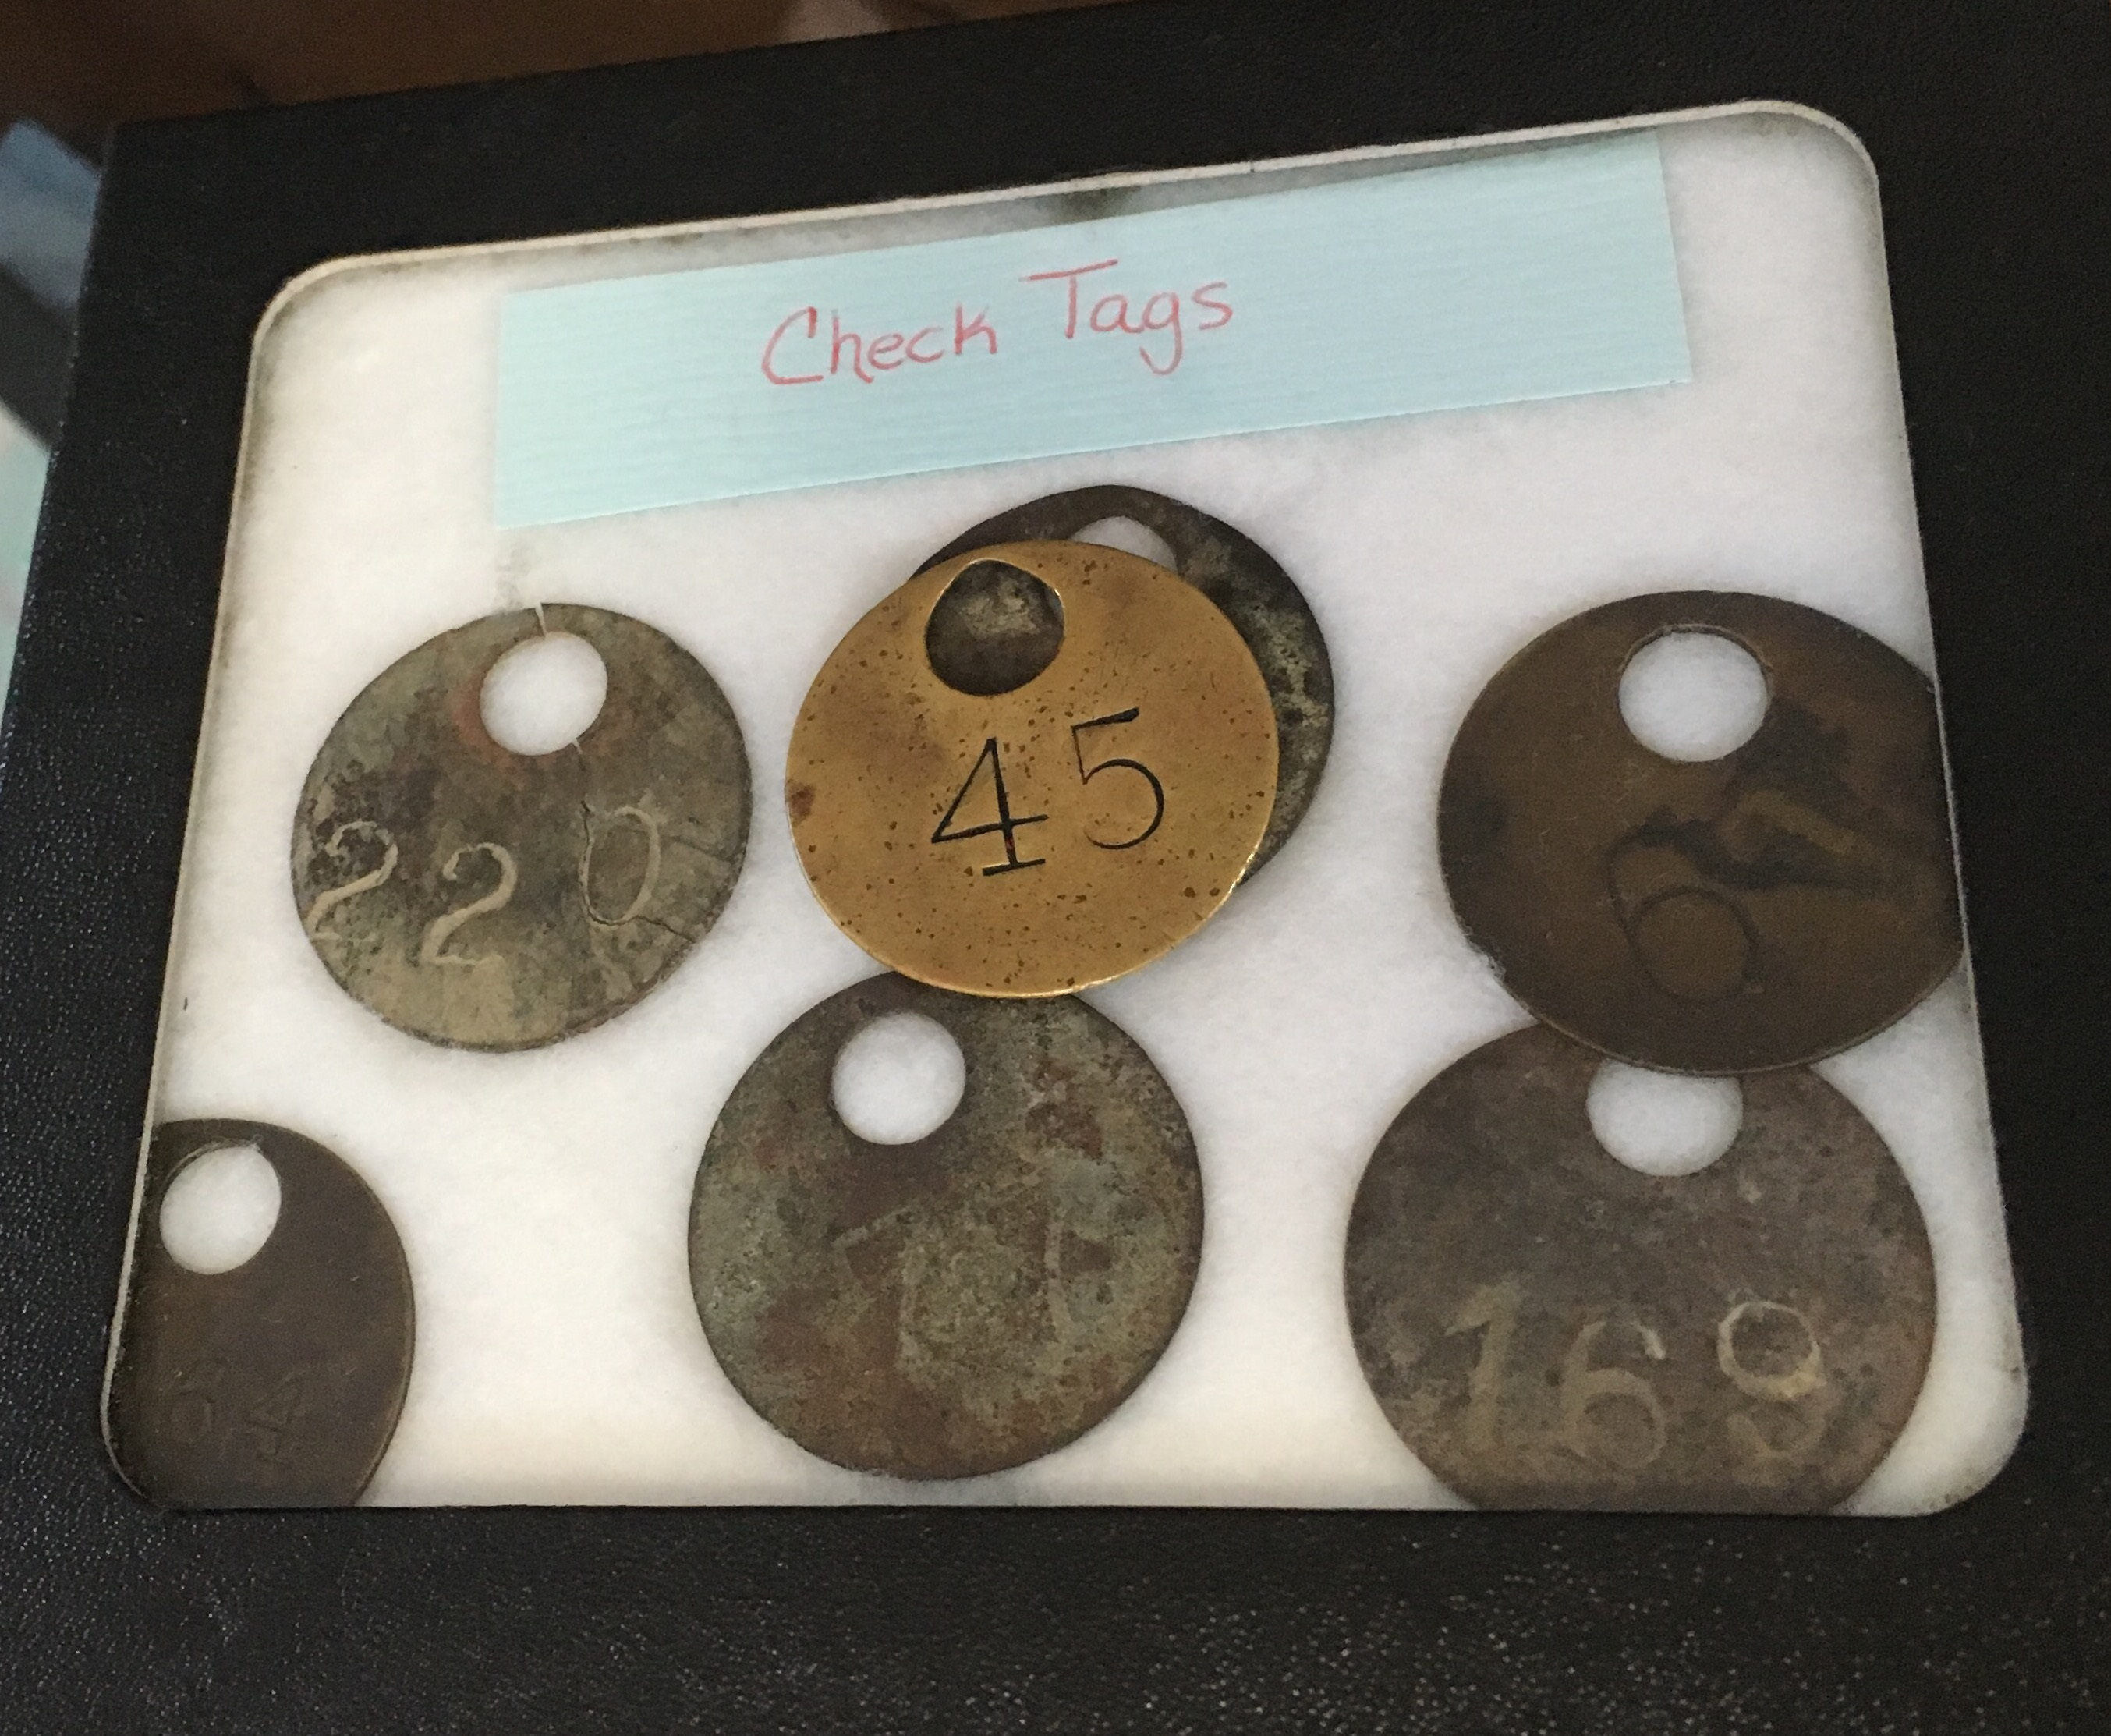 Check tags. These tags were used to identify the miners by a number. 